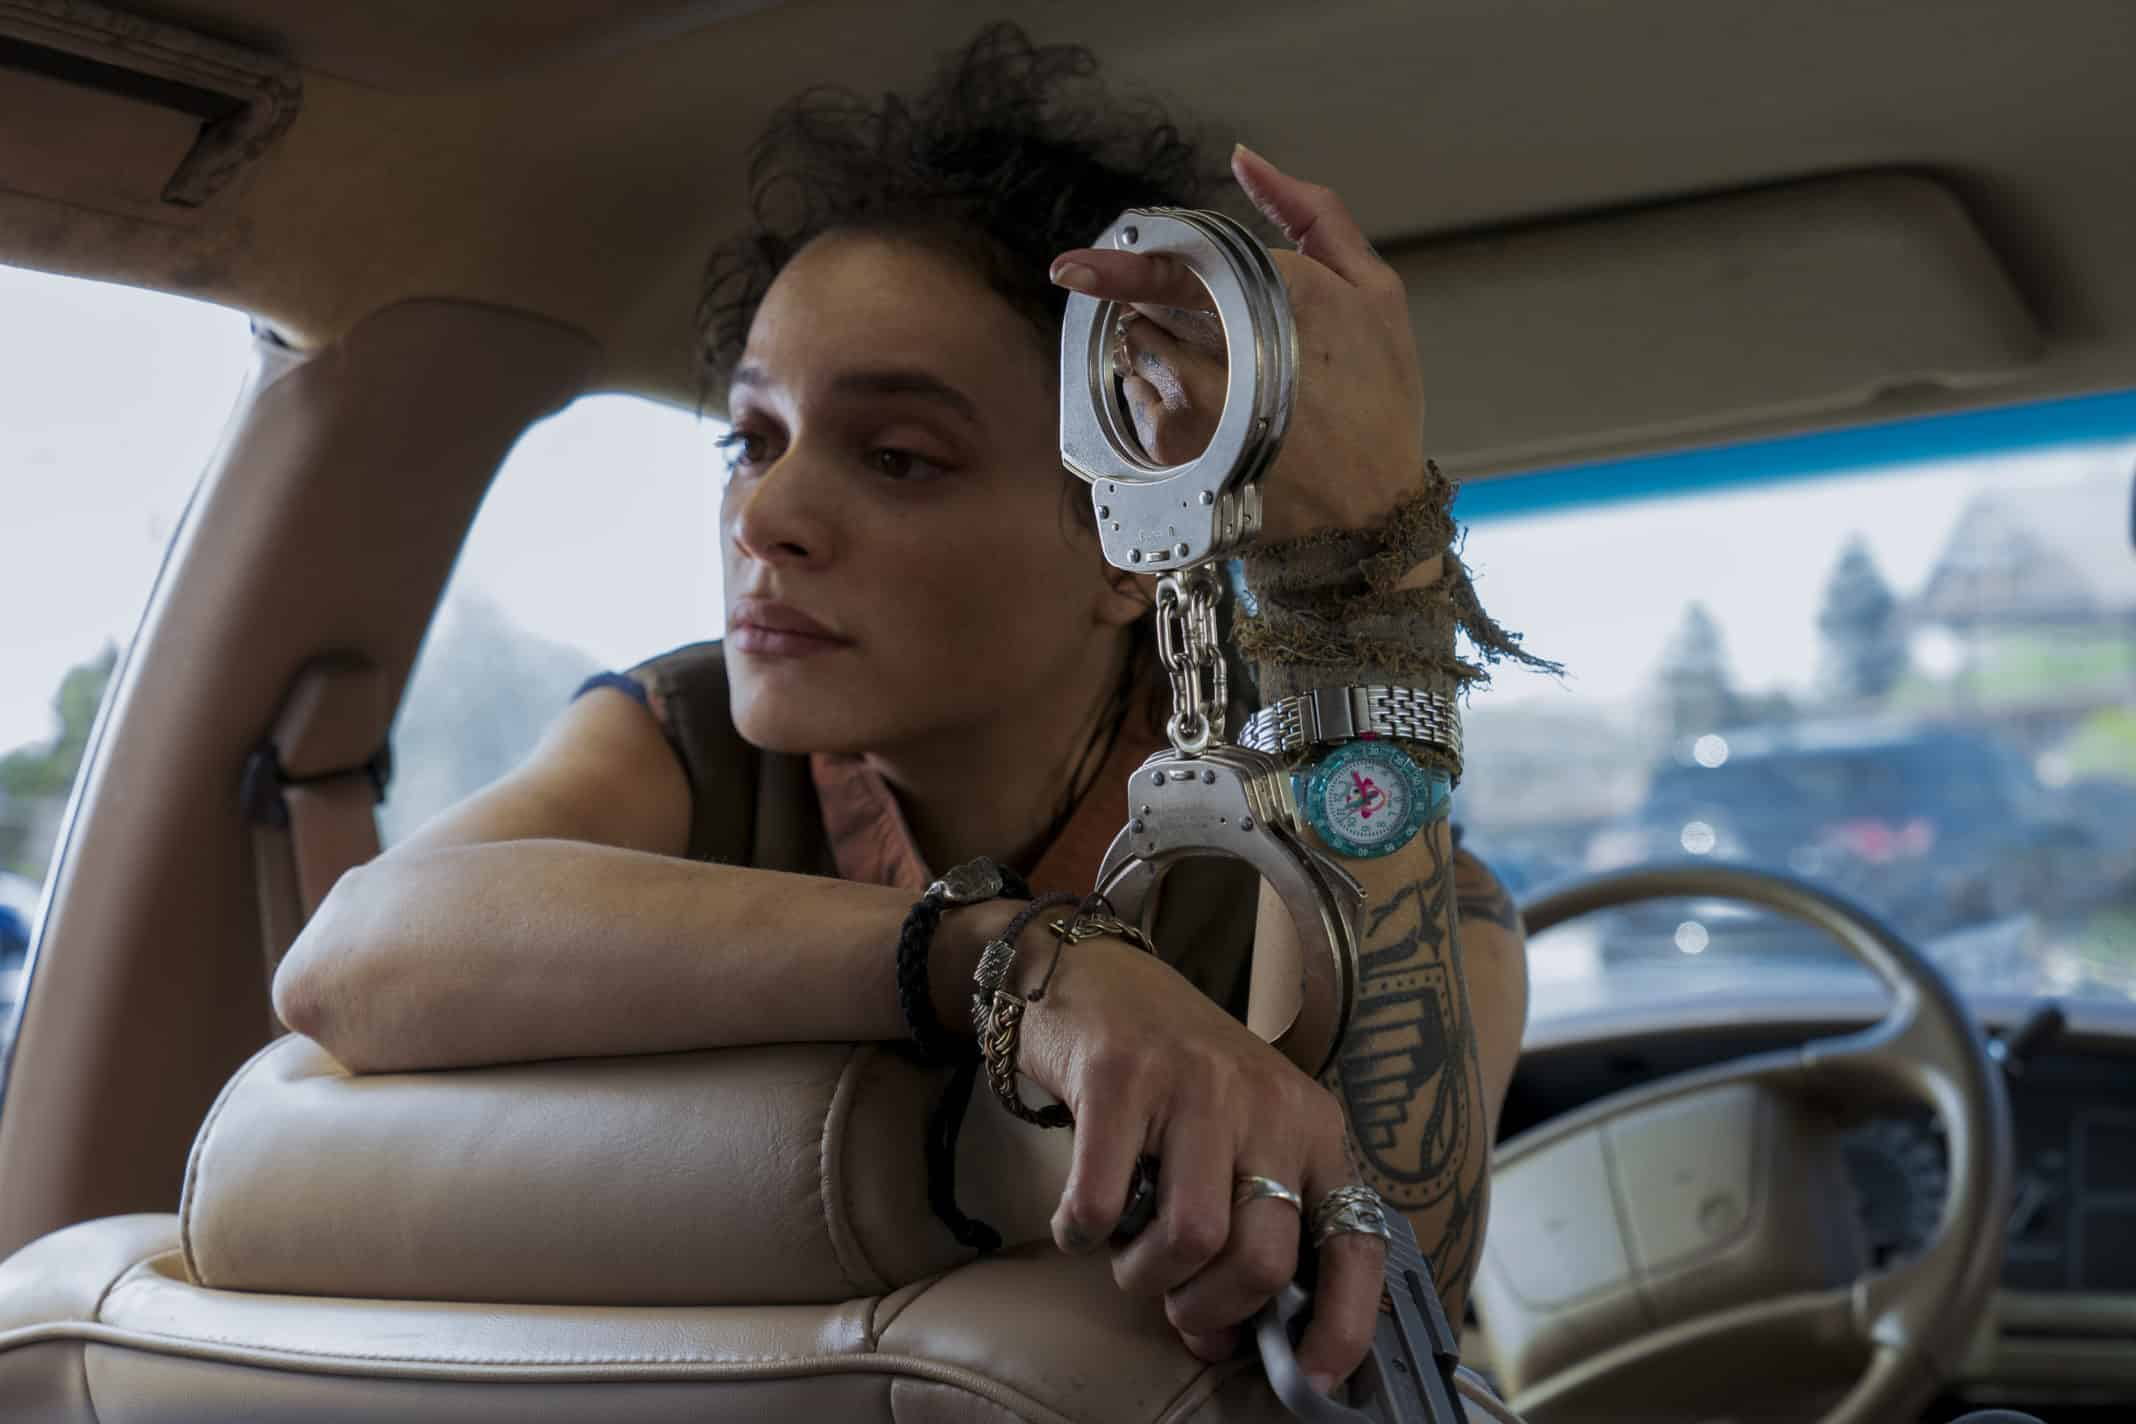 Jessica Hyde (Sasha Lane) with handcuffs in one hand and a gun in another.